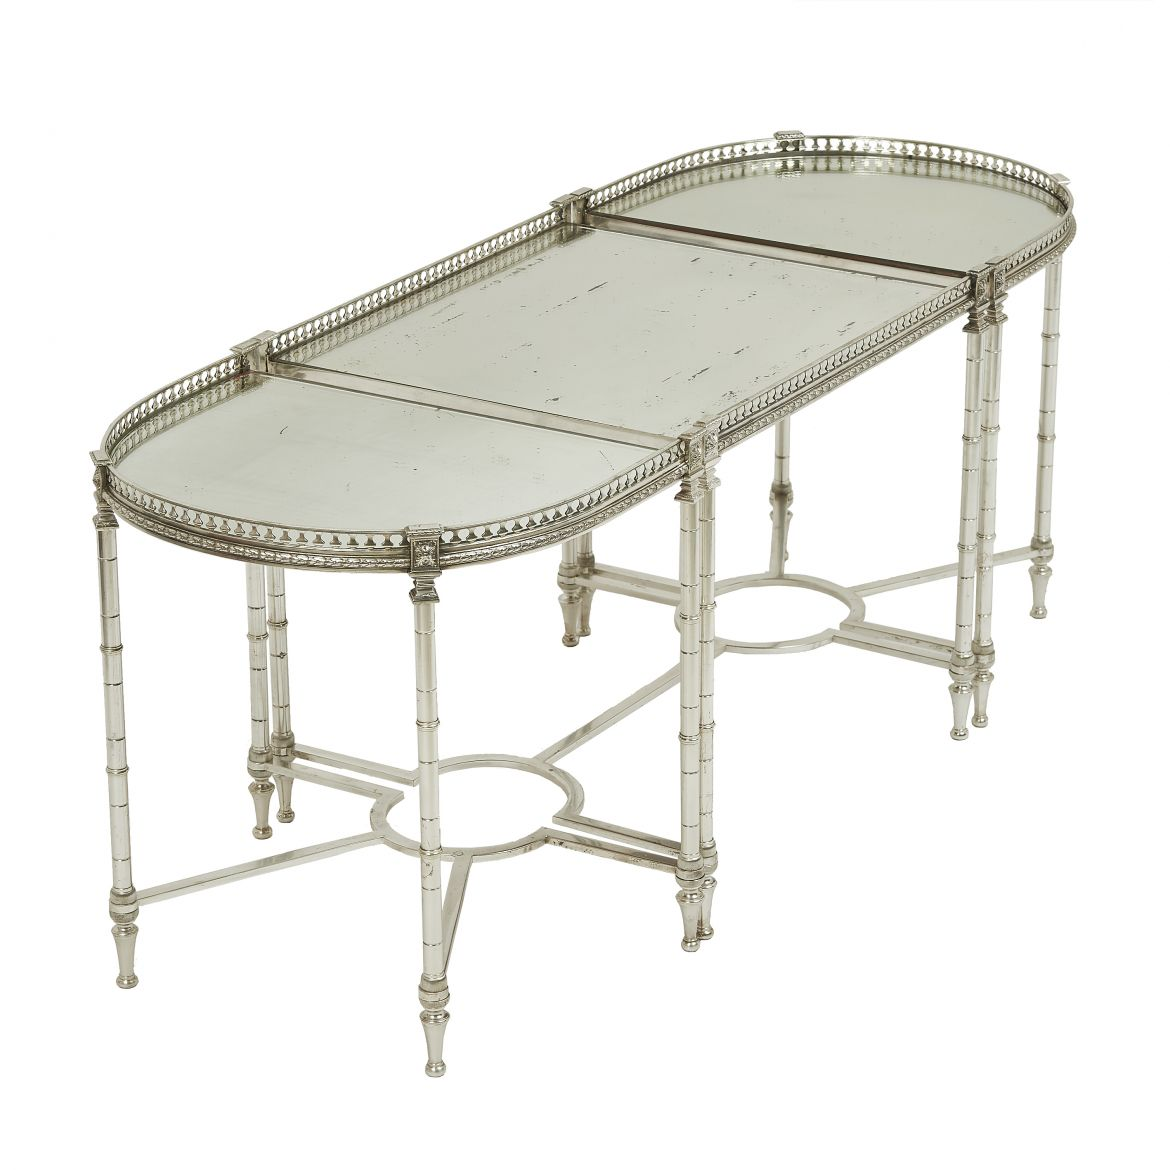 Silvered Bronze & Mirrored Place Surtout Table